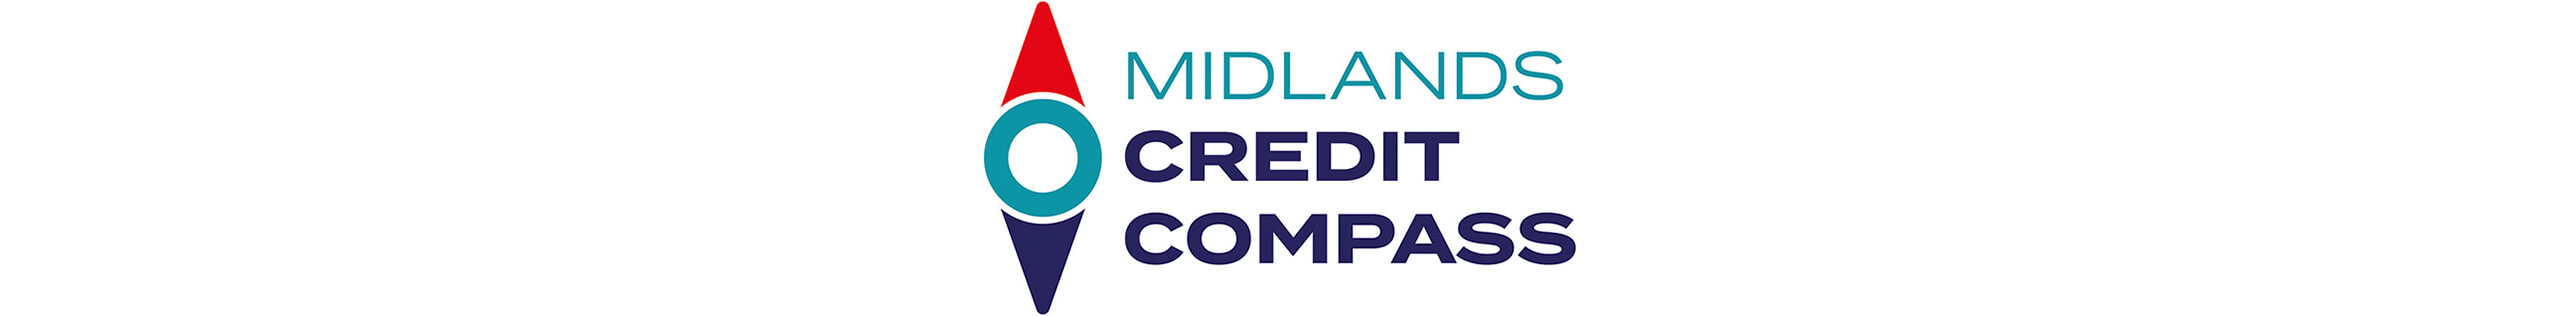 The Midlands Credit Compass Logo